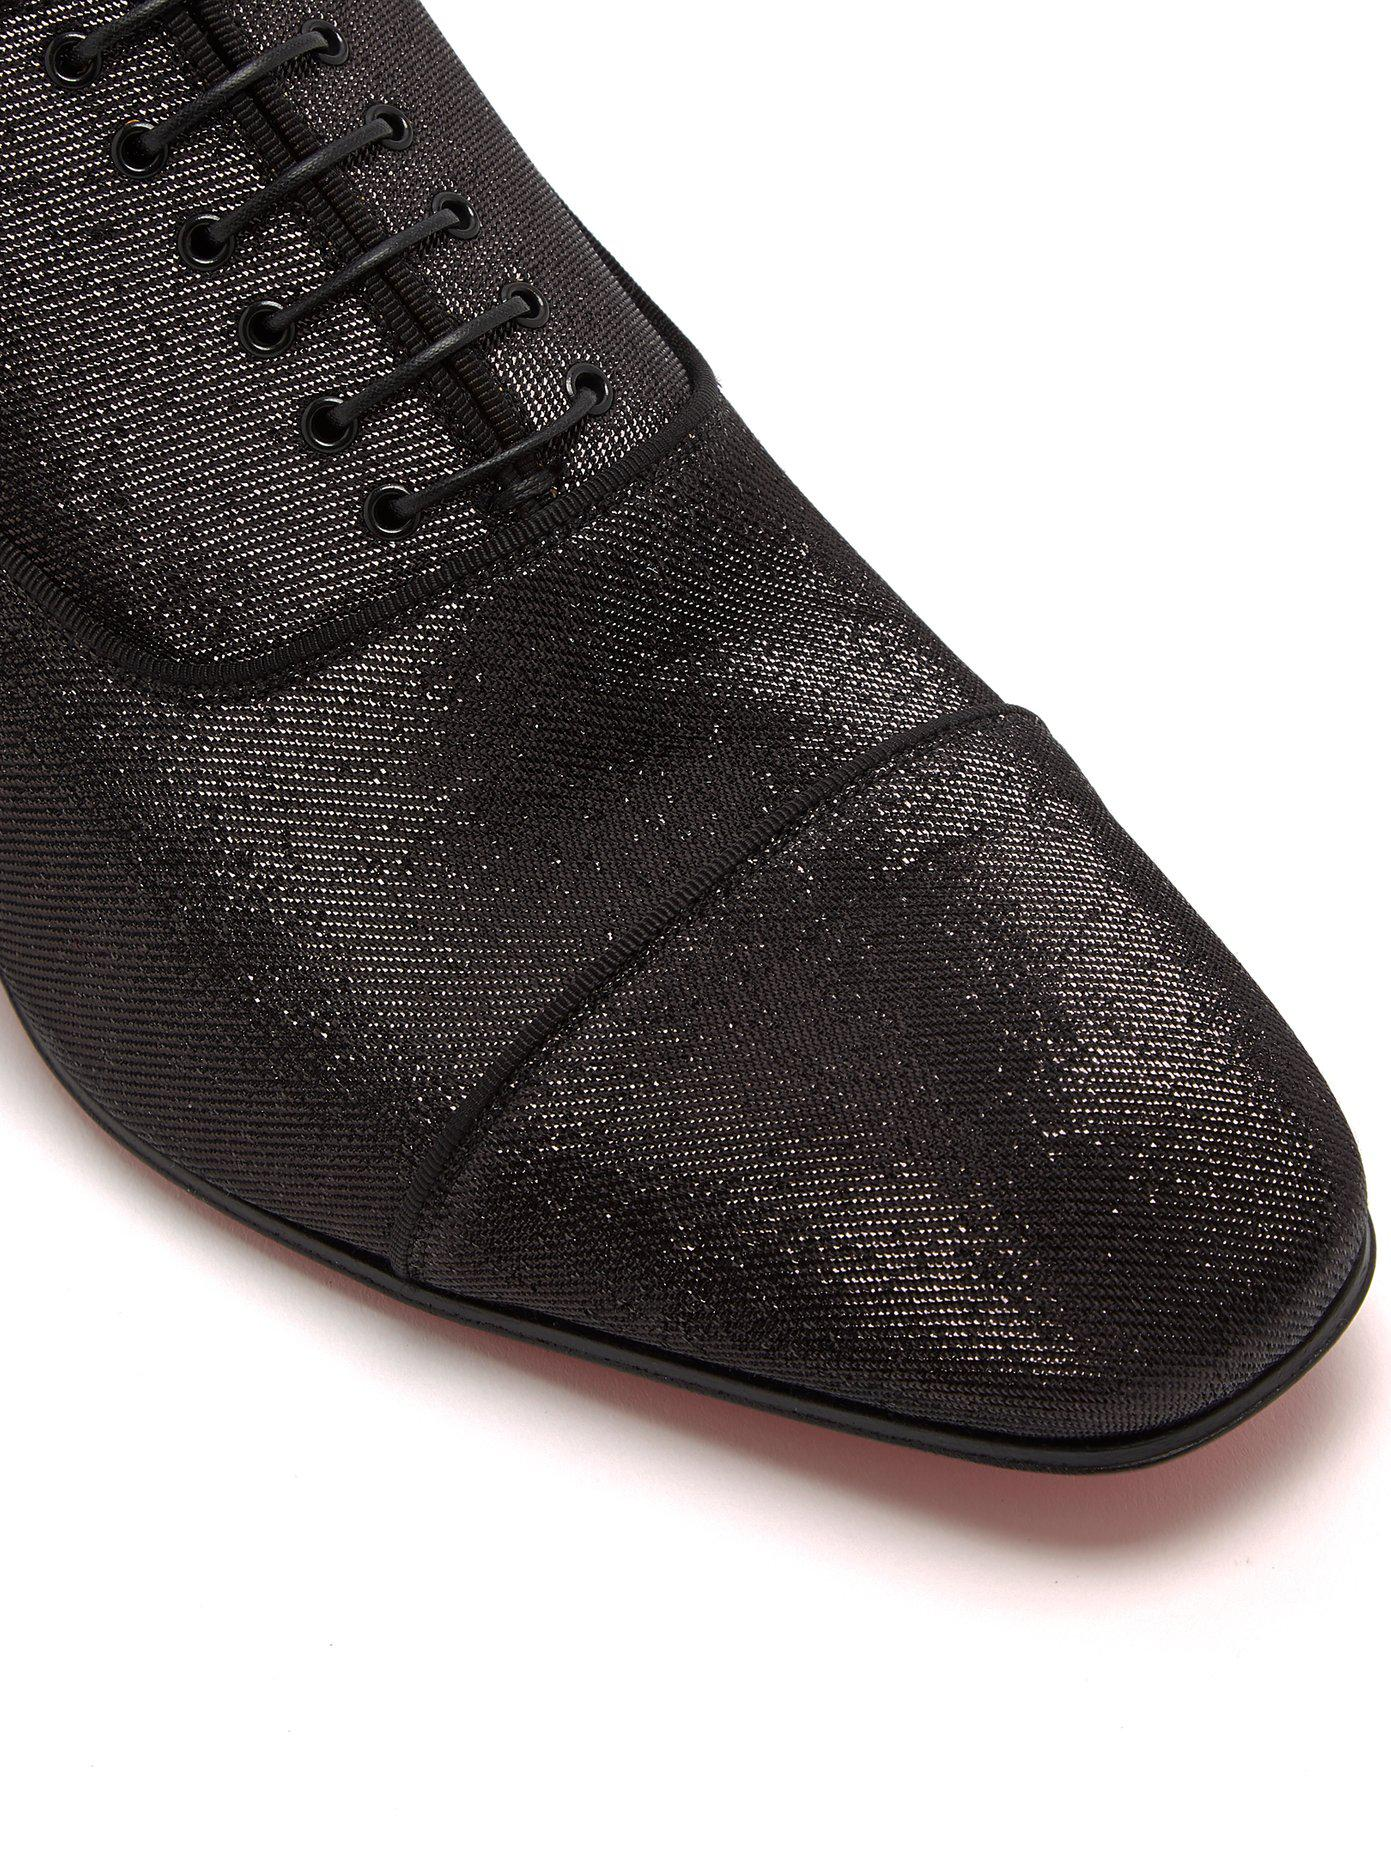 Chaussures oxford Lord CubanoChristian Louboutin EhwpcAxqa